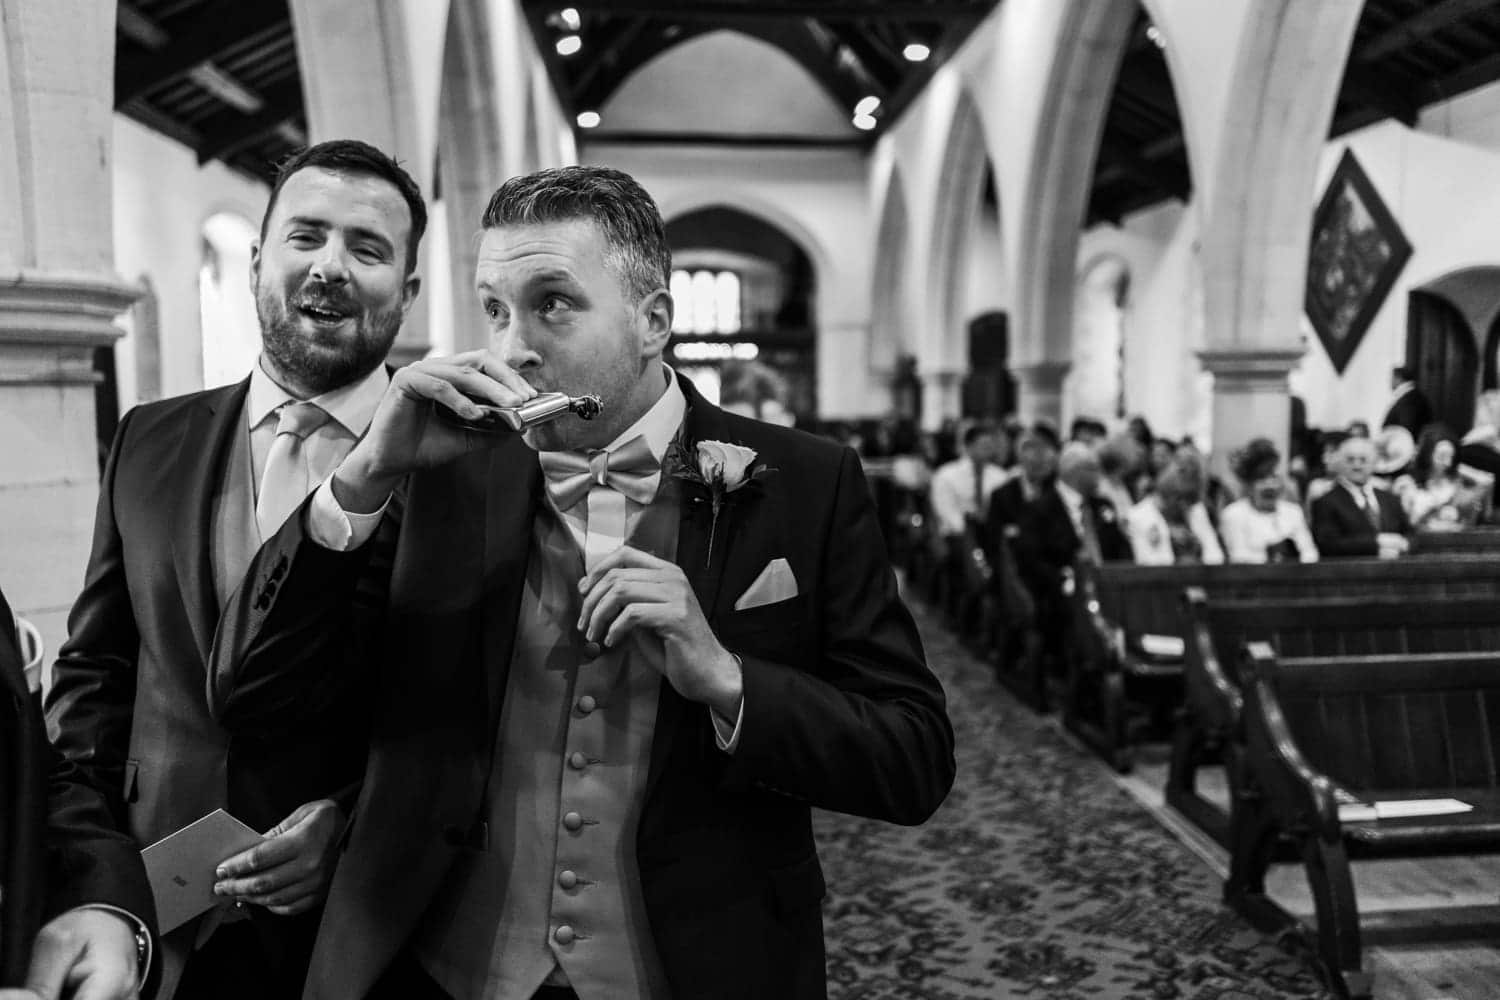 Groom swigs from hip flash at church alter